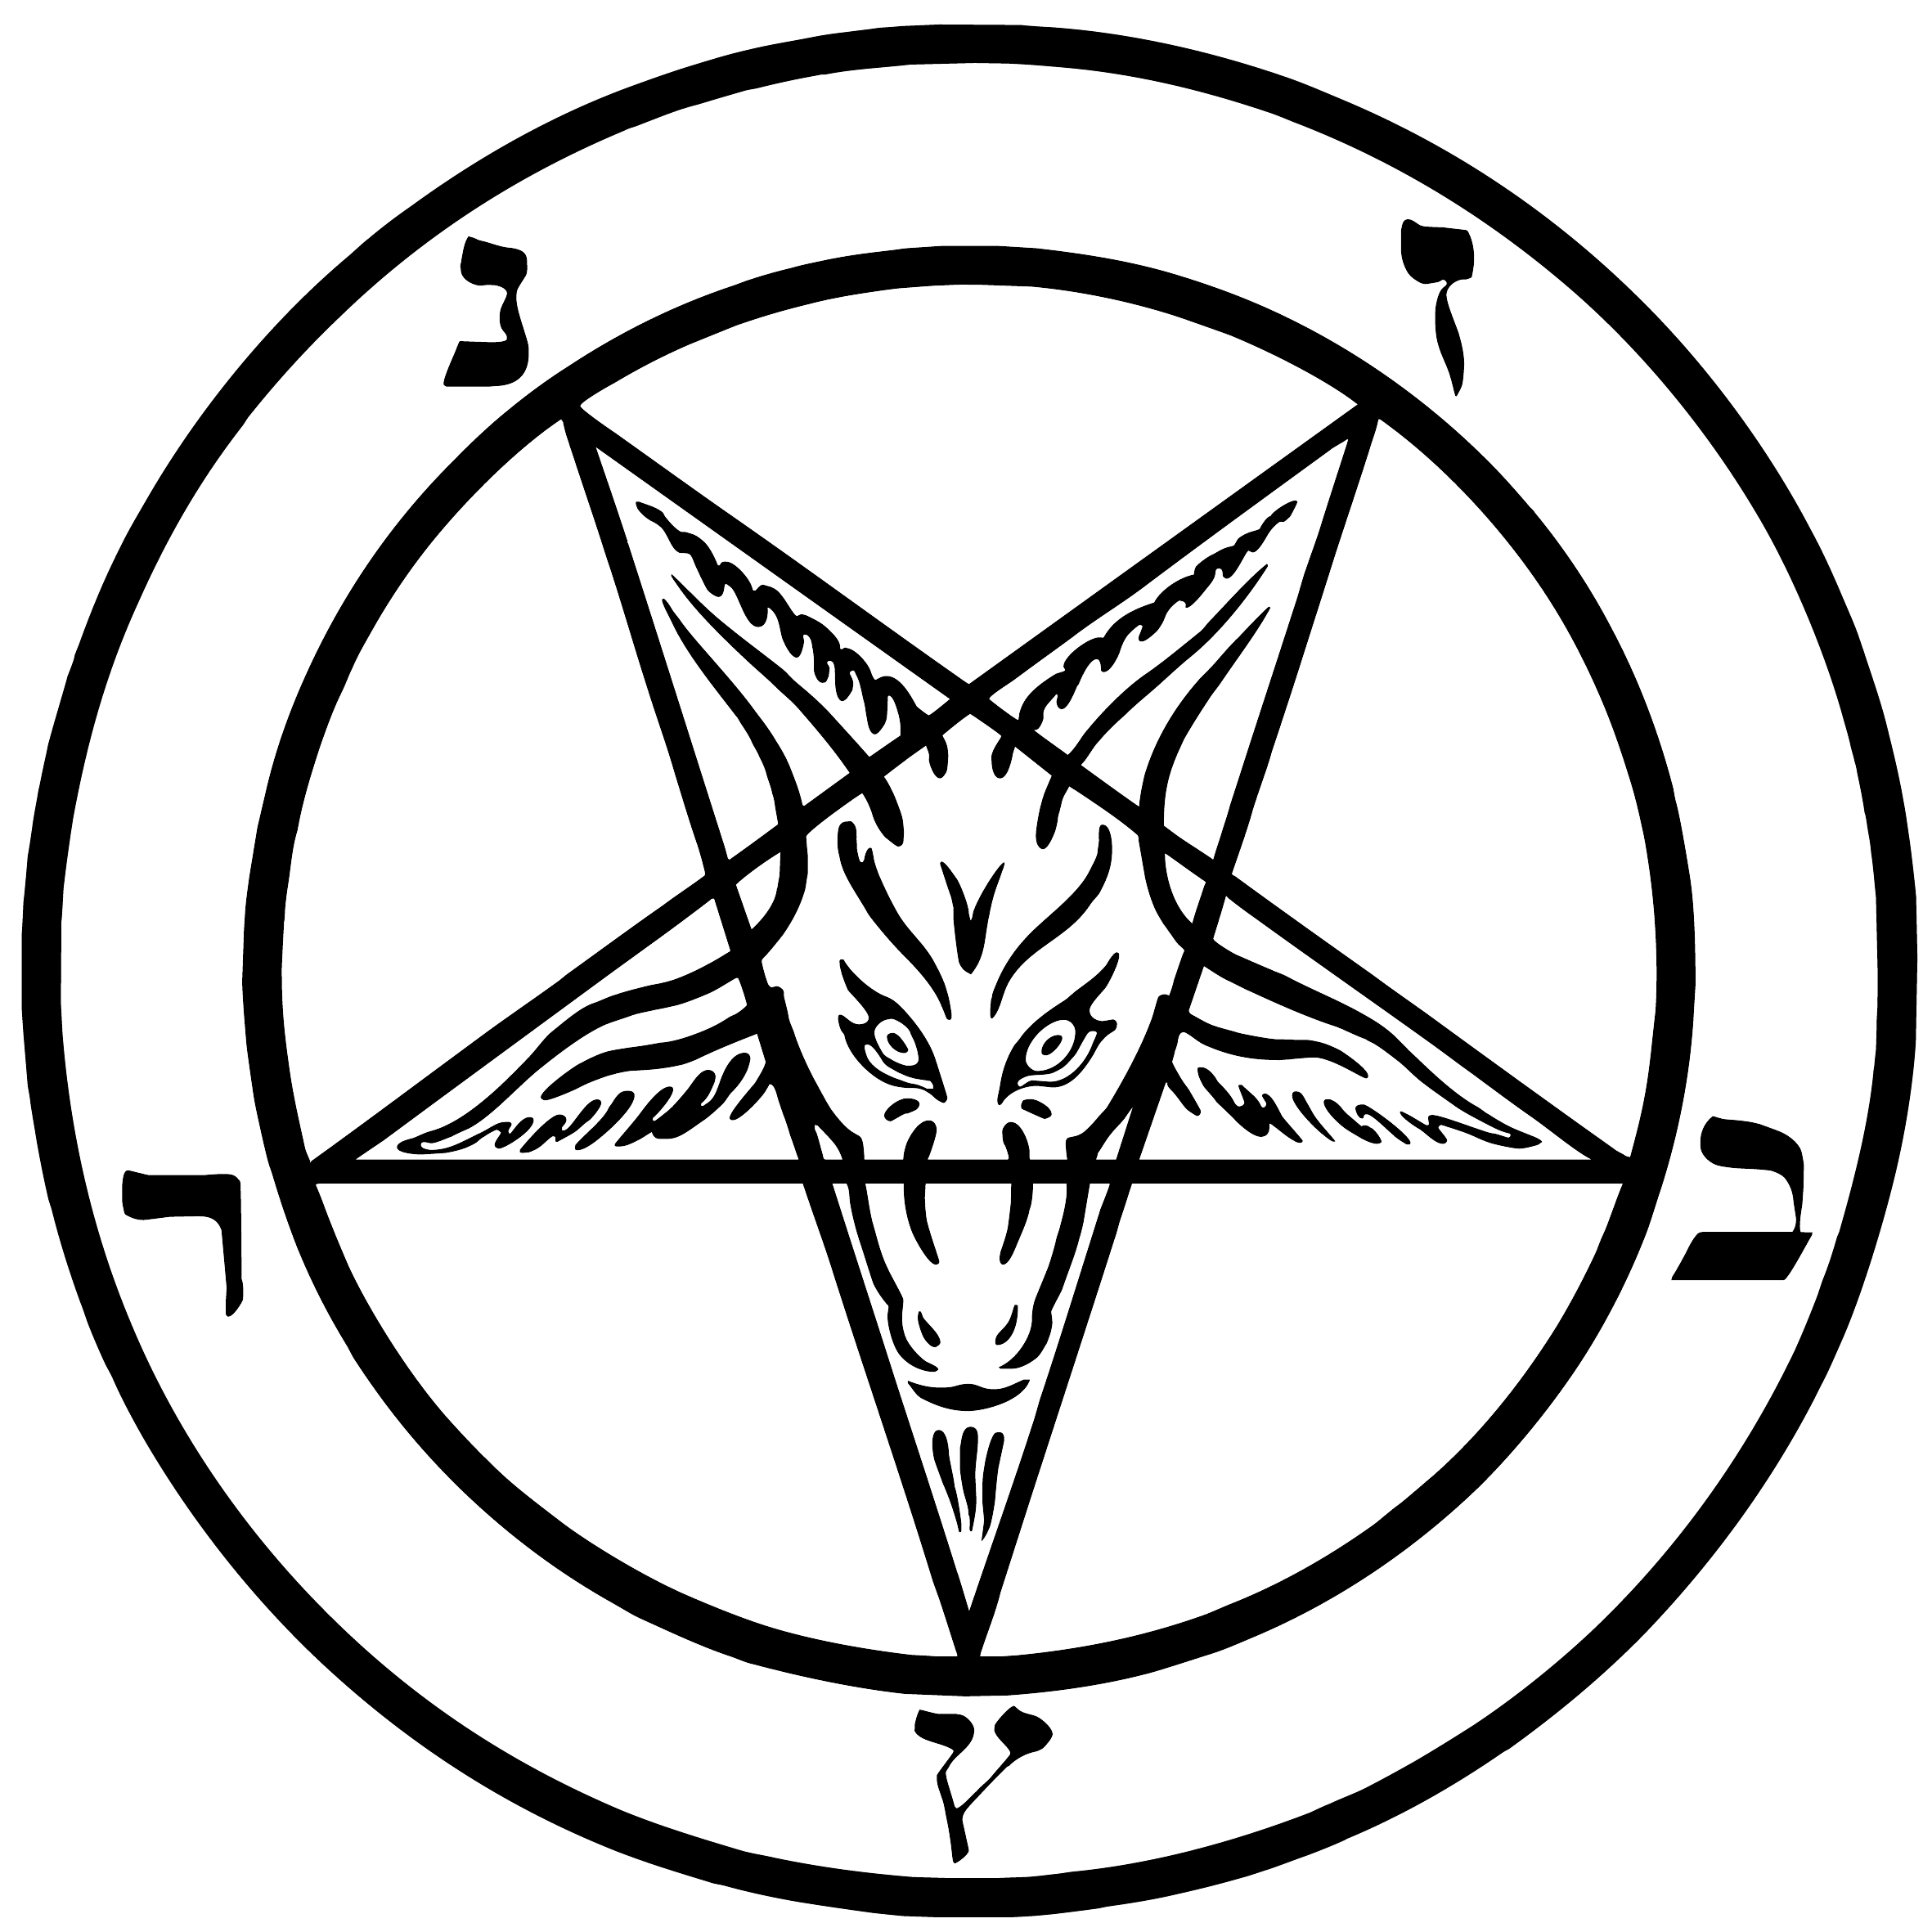 image free download A satanist on why. Baphomet drawing easy